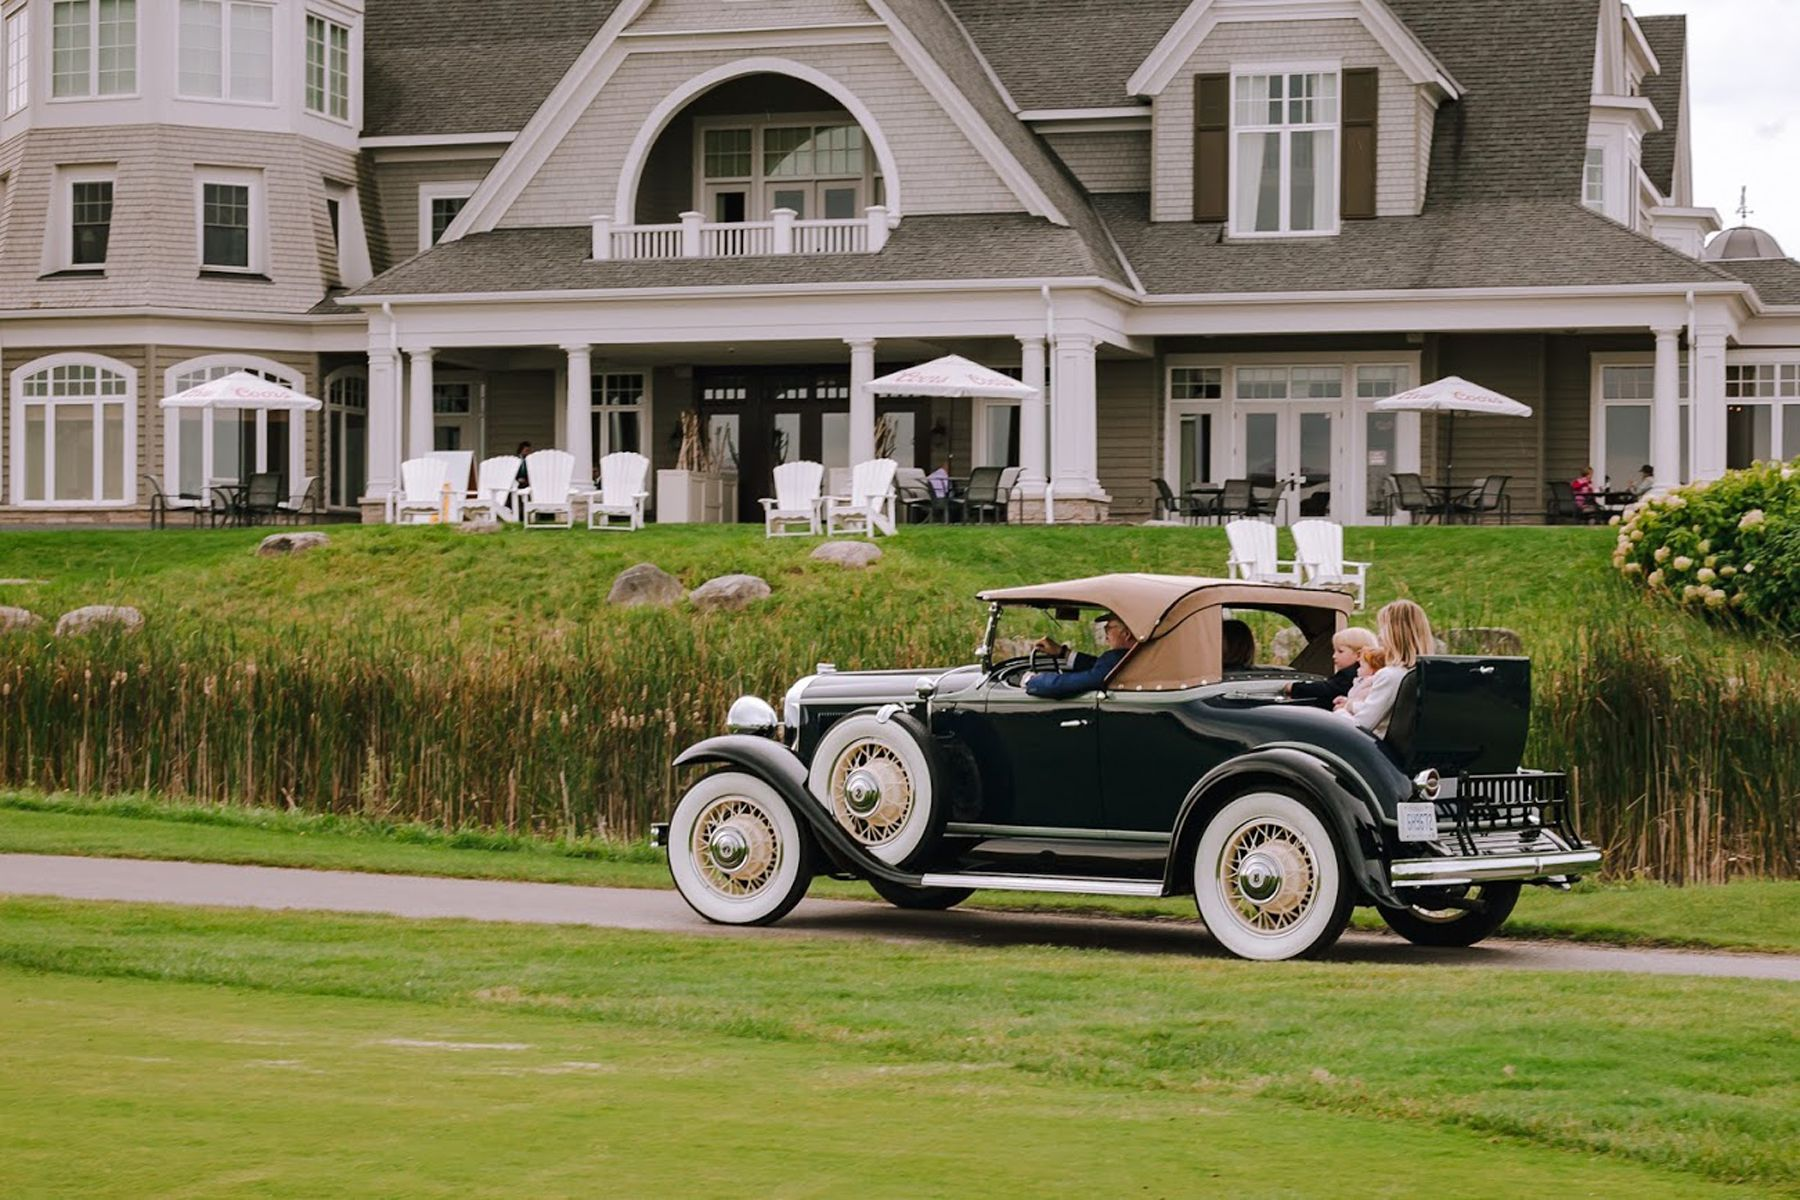 Rob and Rosemary McLeese and grandchildren ride in their restored 1931 McLaughlin-Buick sport roadster at the Cobble Beach Resort Community